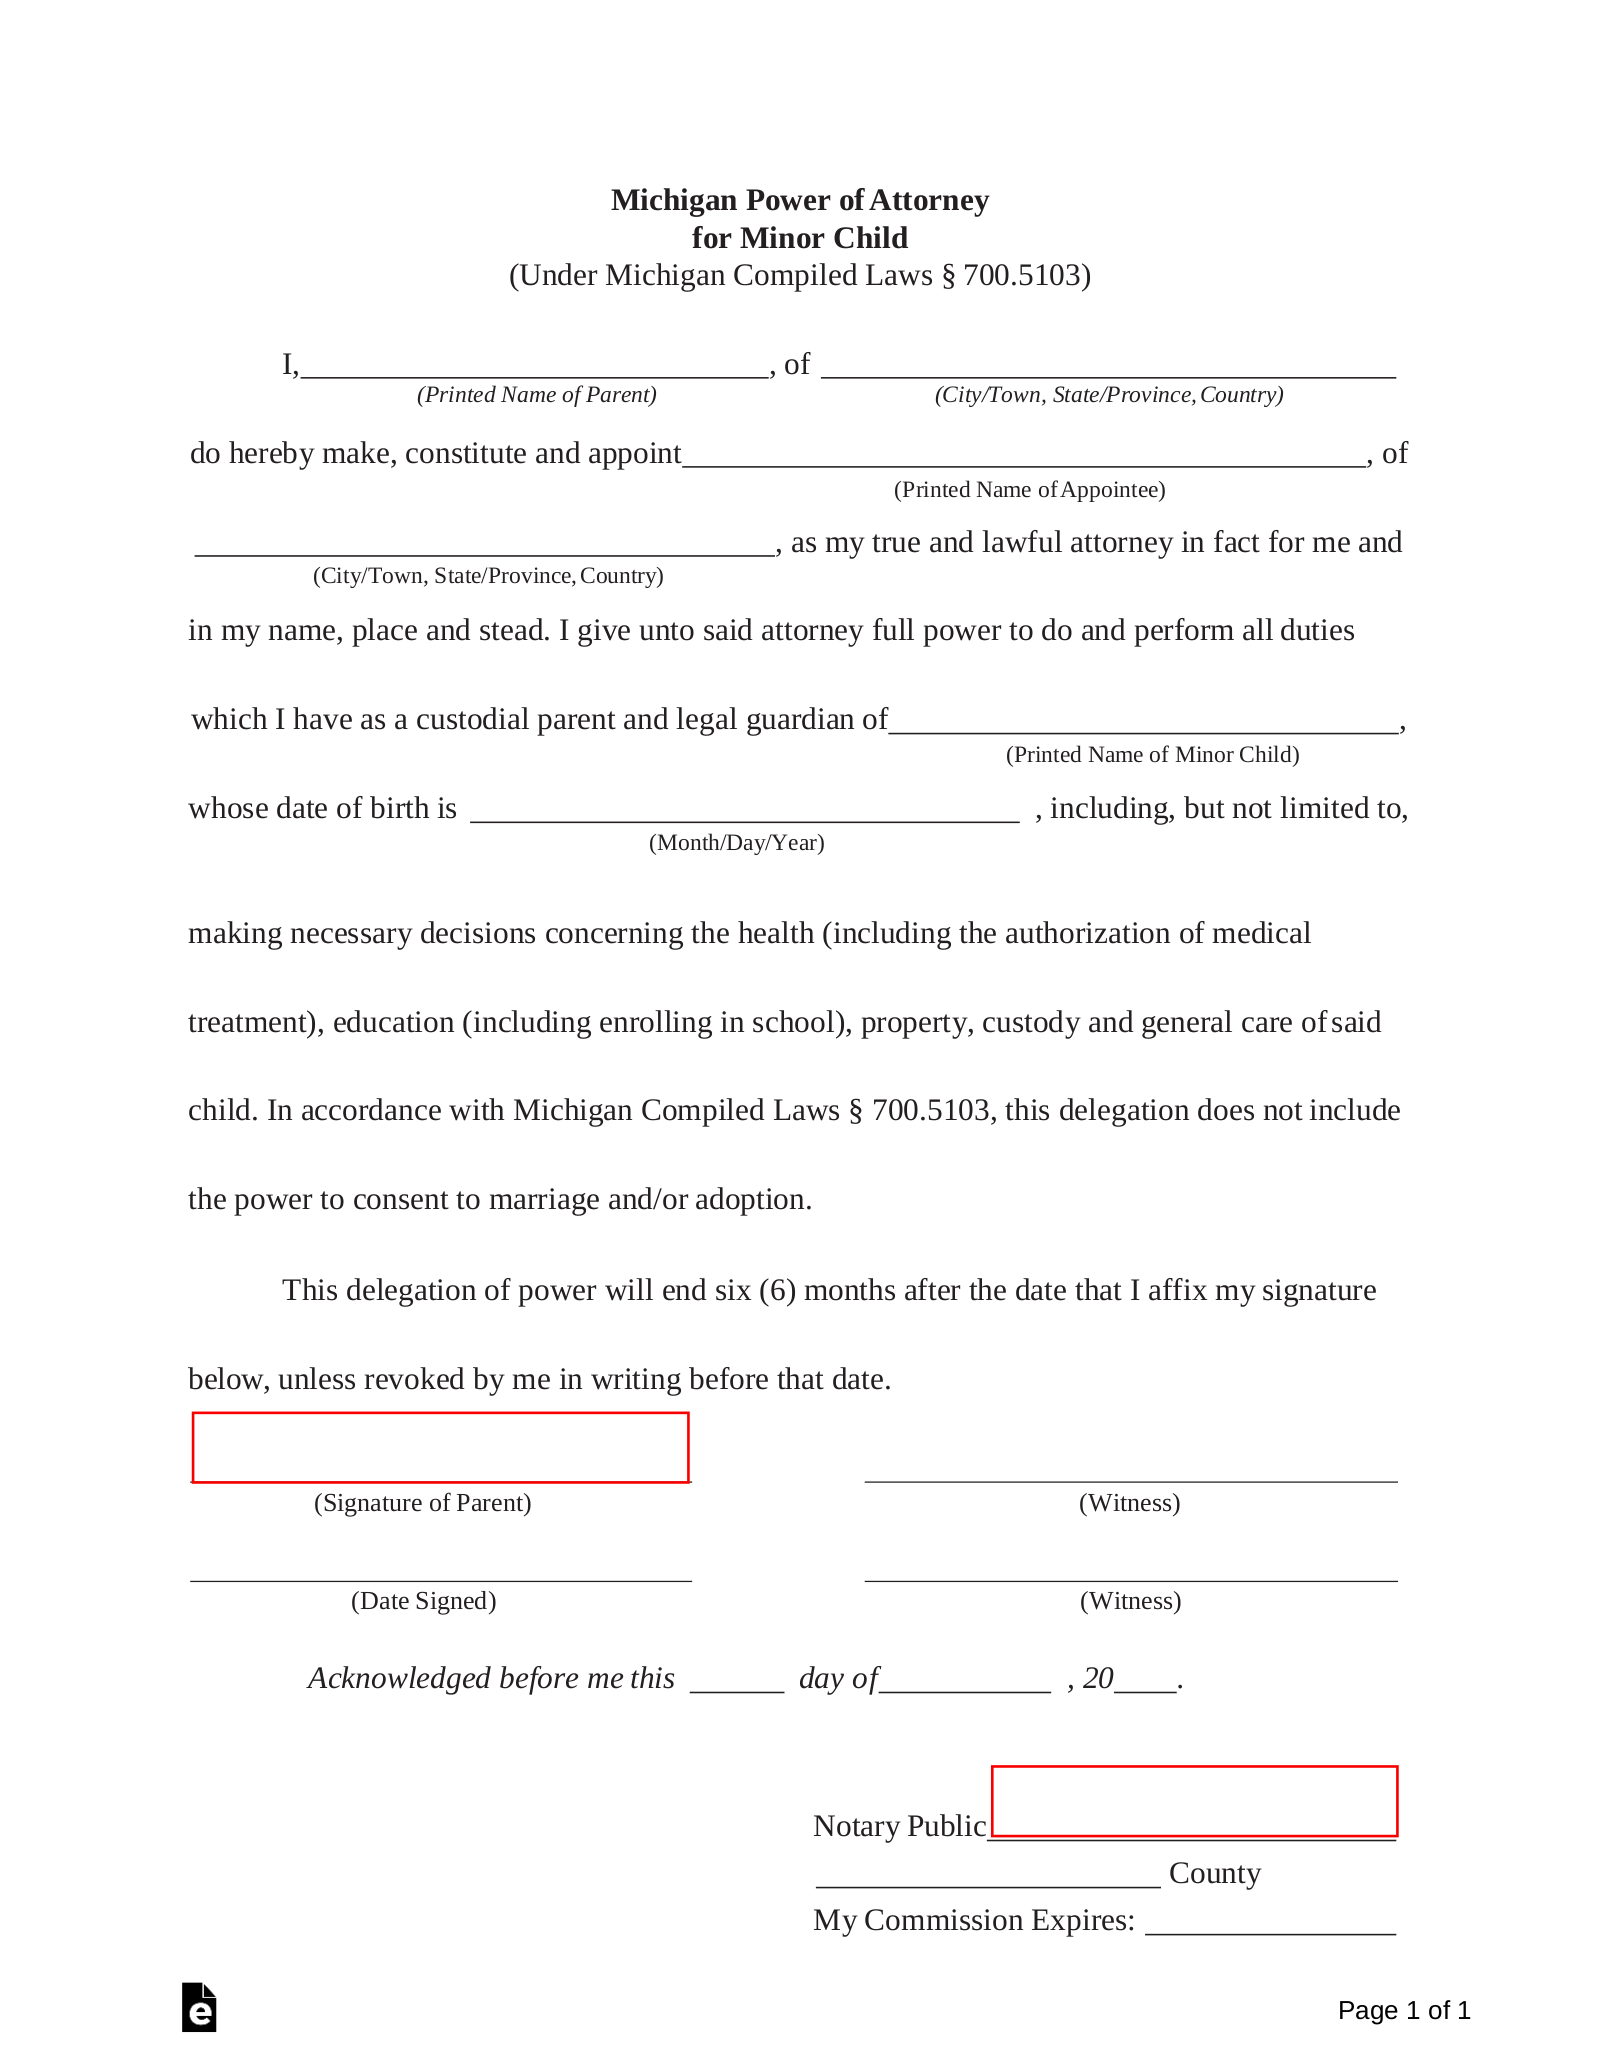 Free Michigan Power of Attorney for Minor Child Form - PDF ...